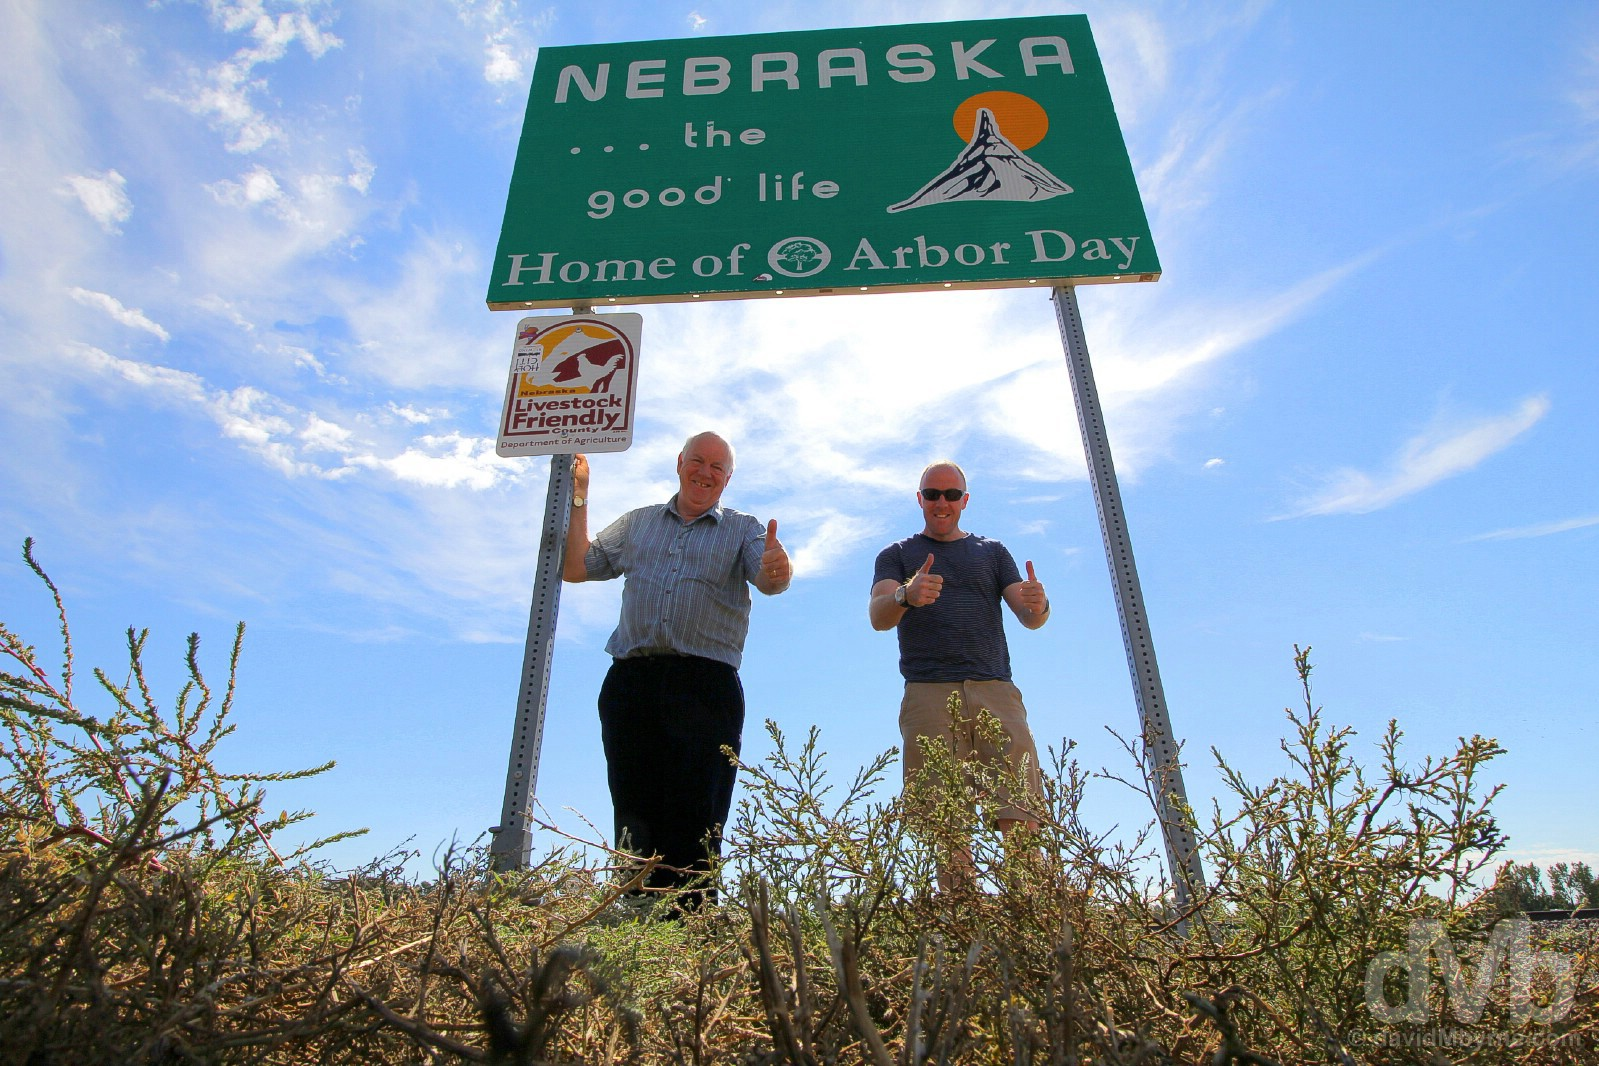 On the Wyoming/Nebraska state line of US Highway 26 in Scotts Bluff County, Nebraska, USA. September 15, 2016.